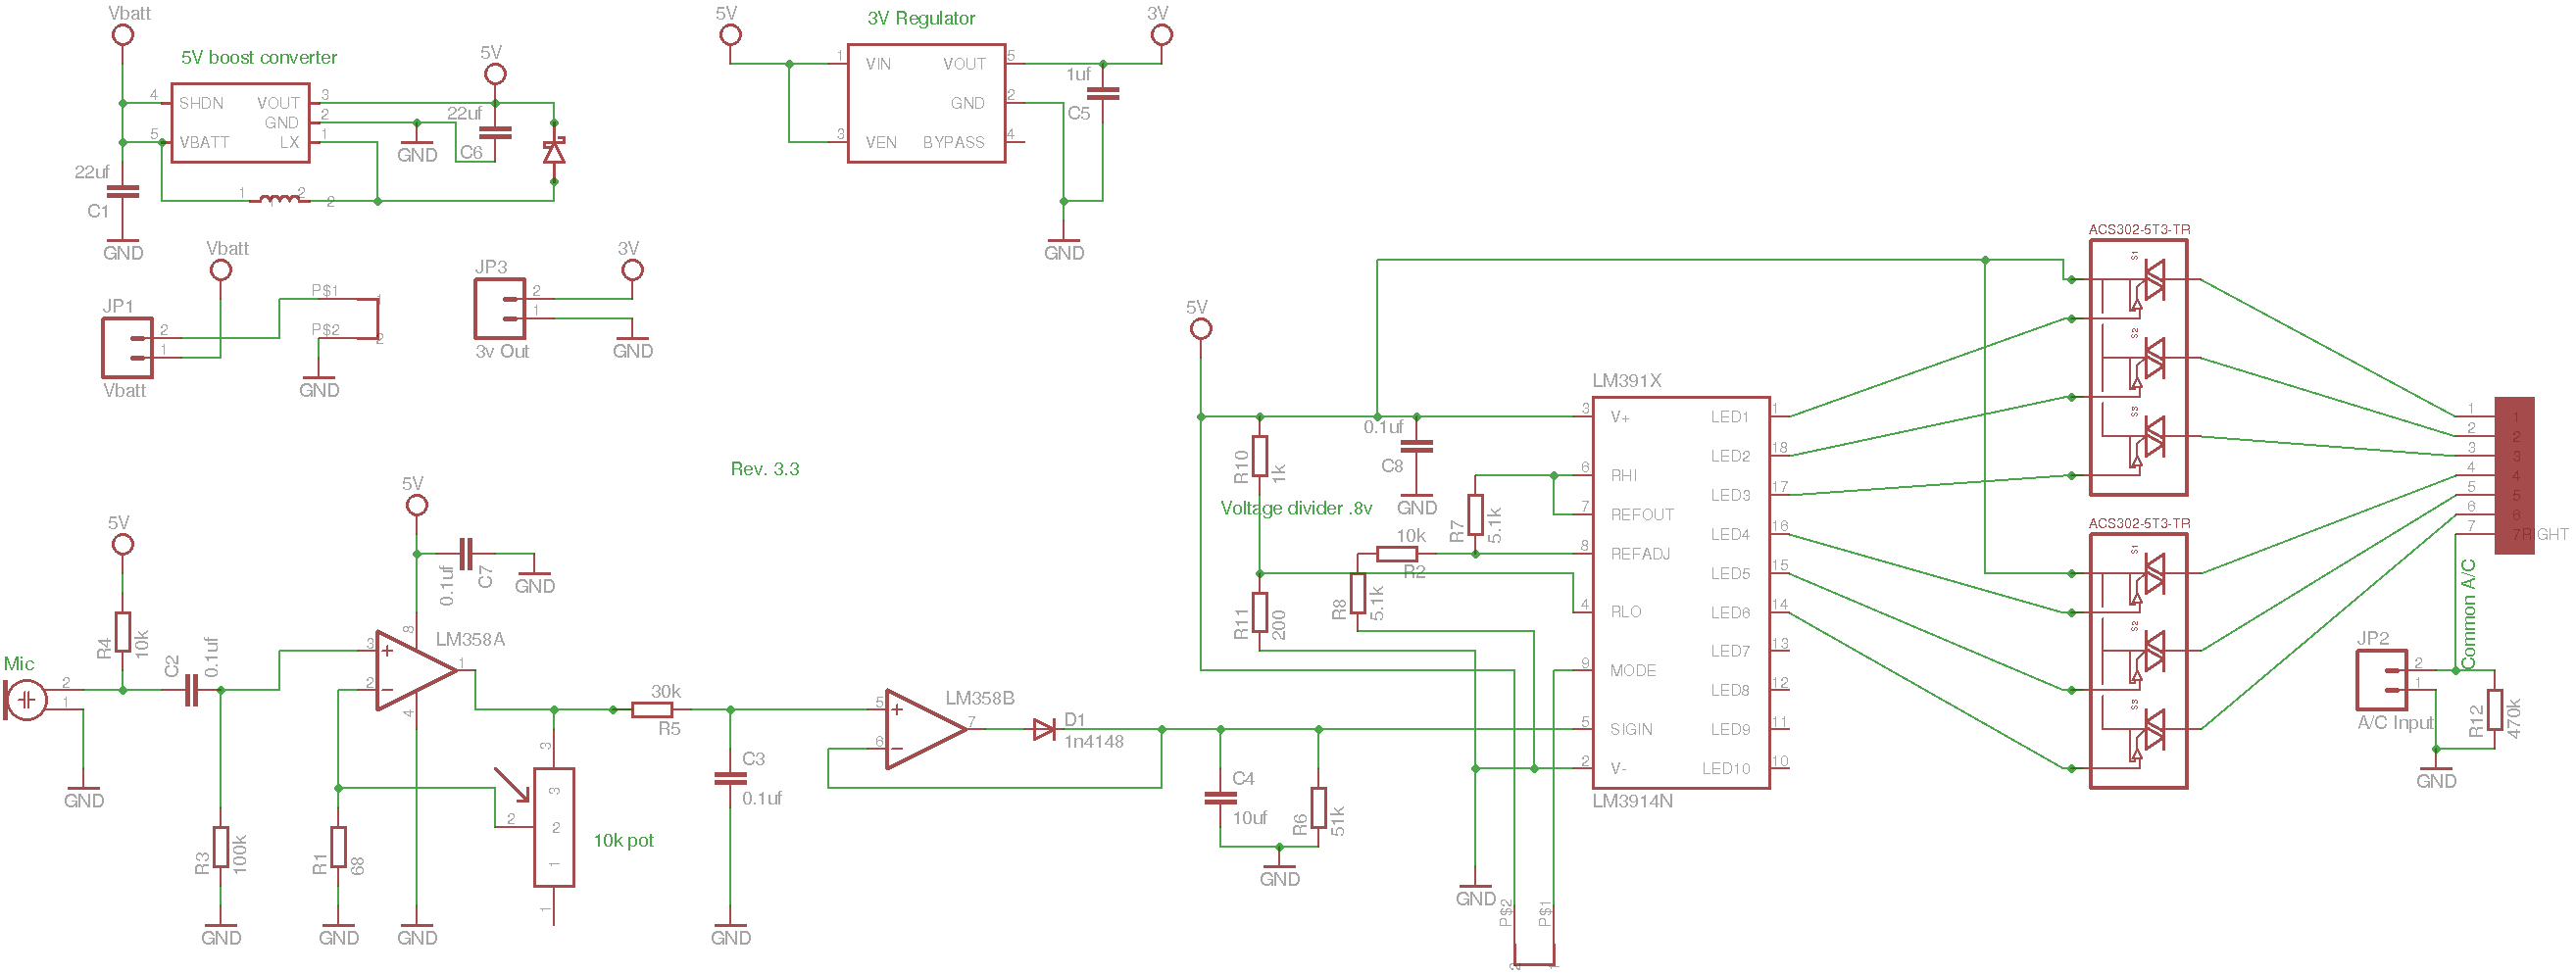 Vu Meter Circuit Page 3 Counter Circuits Http Circuitdiagramhqewnet Adjustablevoltageregulatorcircuit